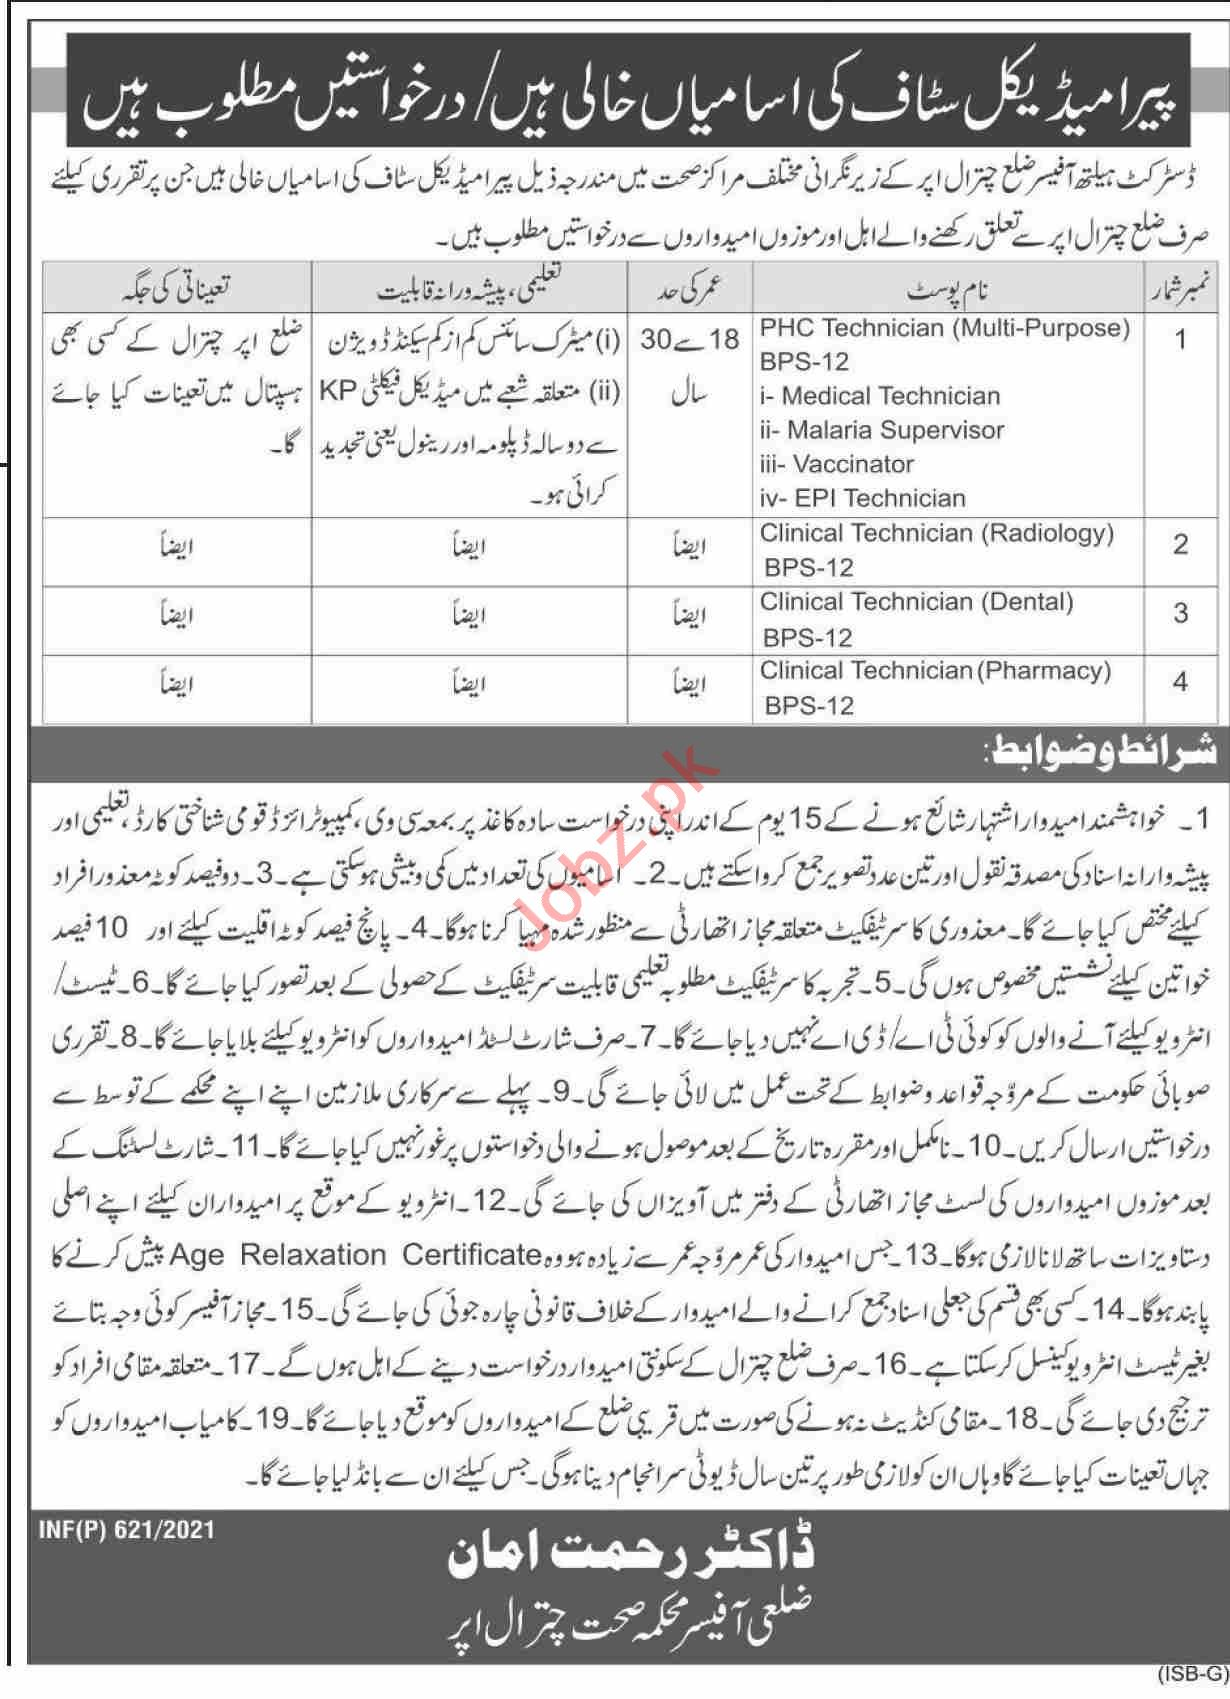 Health Department Chitral Upper Jobs 2021 for PHC Technician